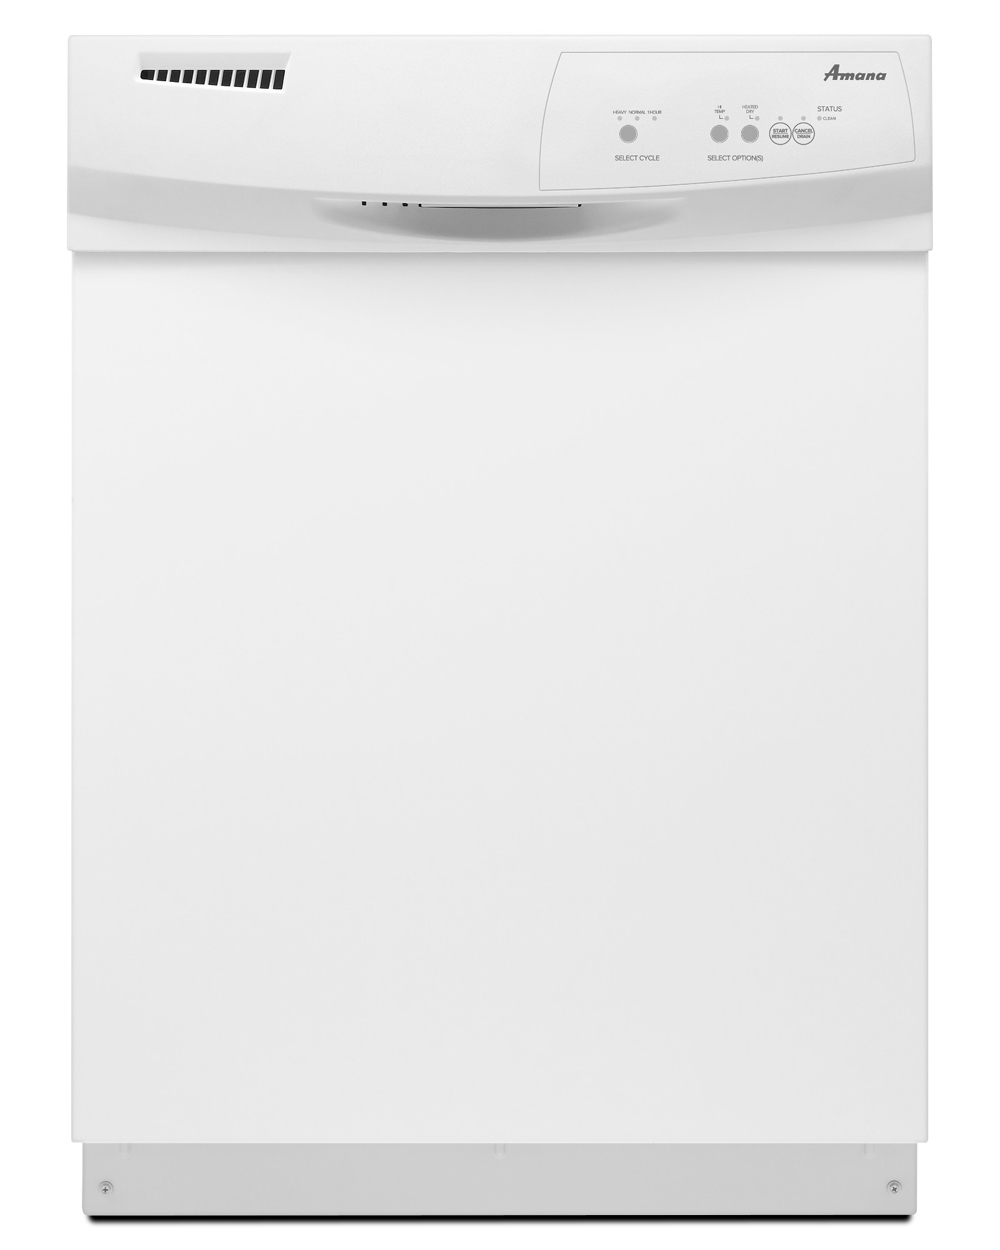 "AMANA� BUILT-IN 24"" TALL DISHWASHER WITH ELECTRONIC FRONT CONTROLS, WHITE, 3 CYCLES"